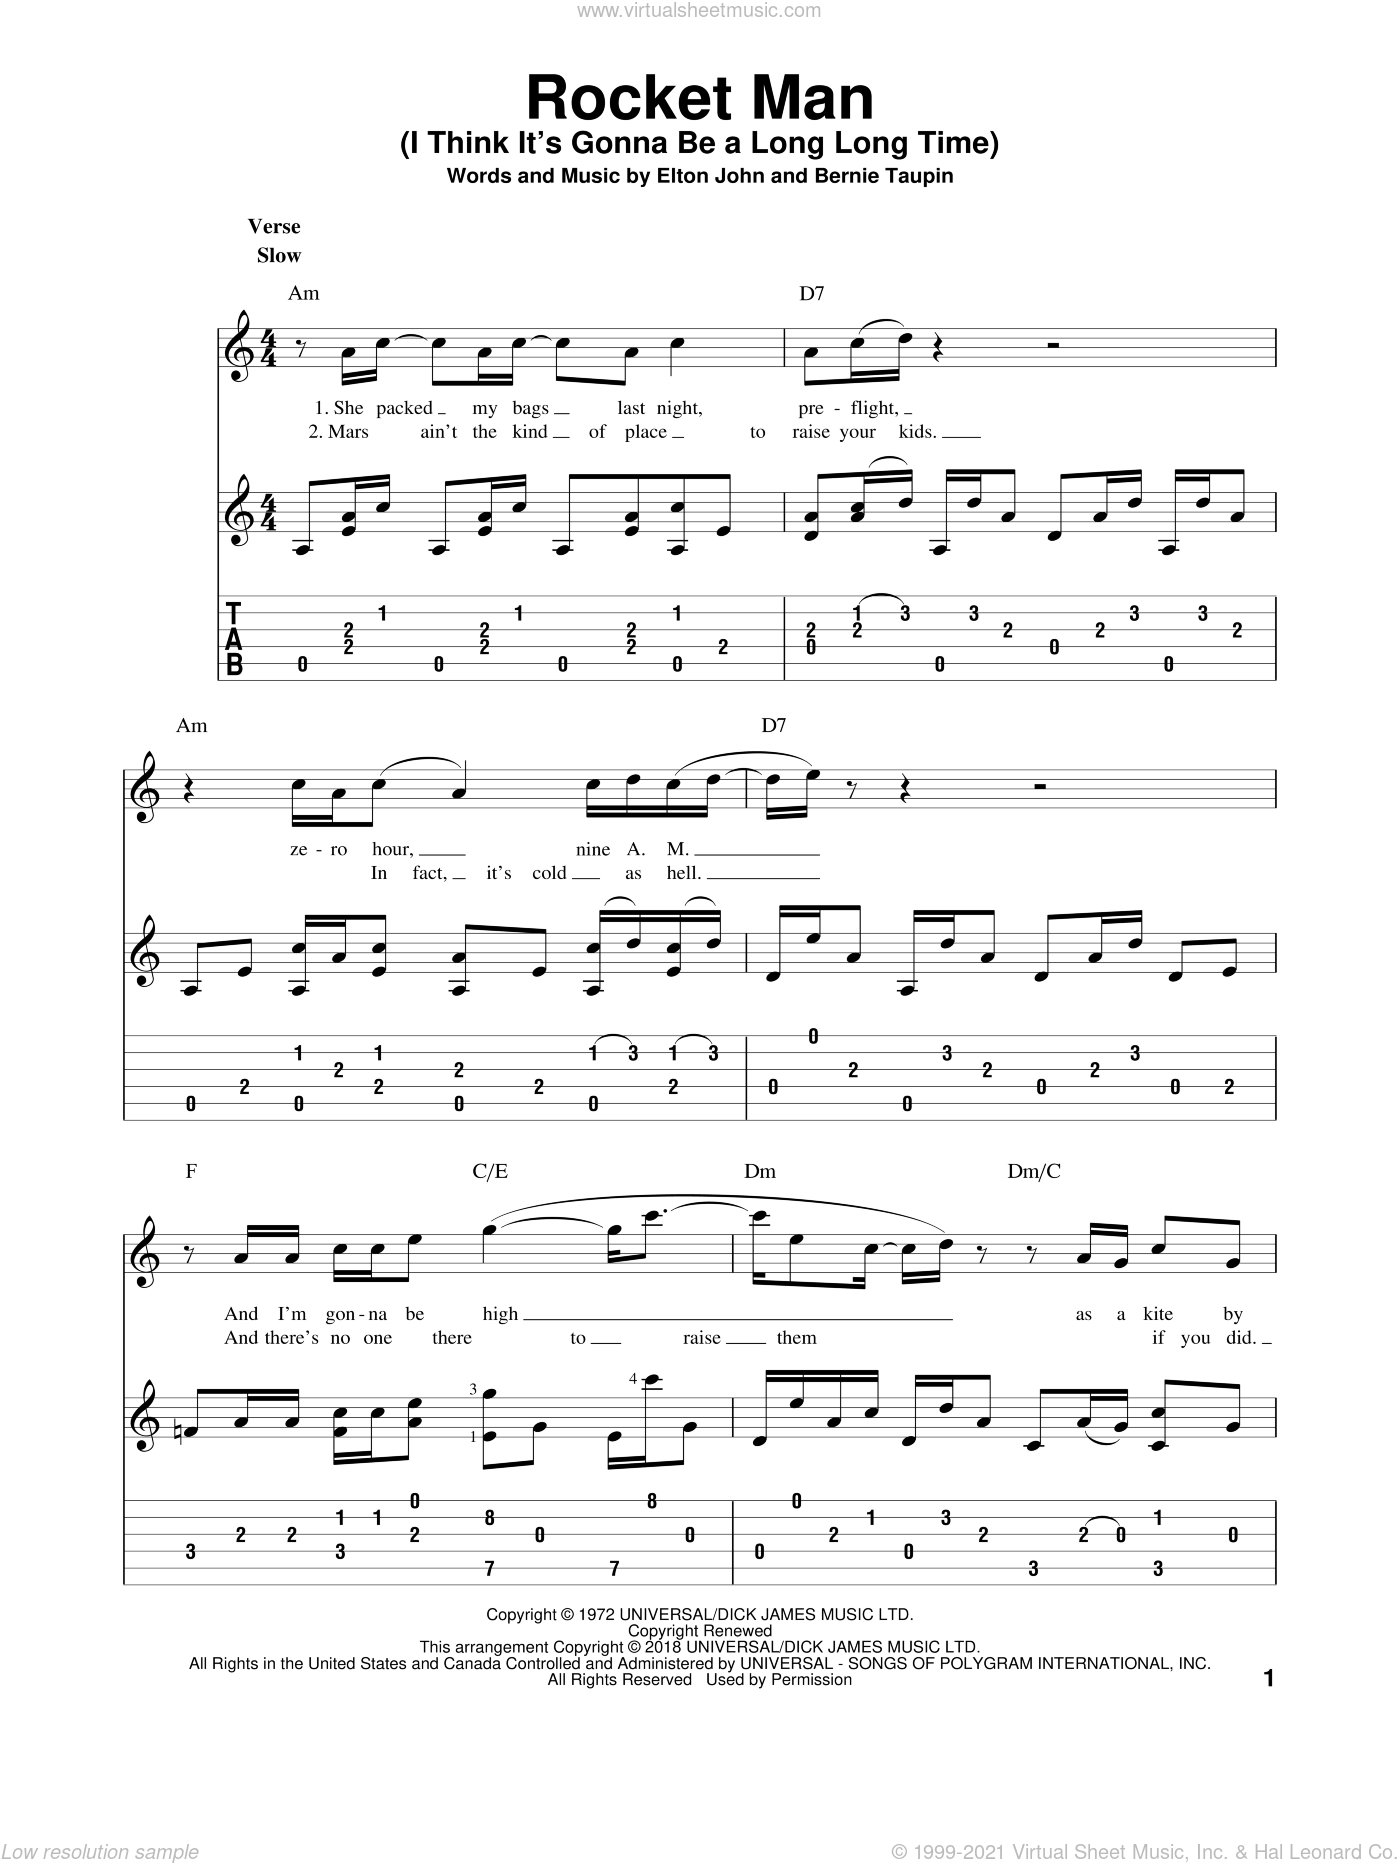 Rocket Man (I Think It's Gonna Be A Long Long Time) sheet music for guitar solo by Elton John and Bernie Taupin, intermediate skill level